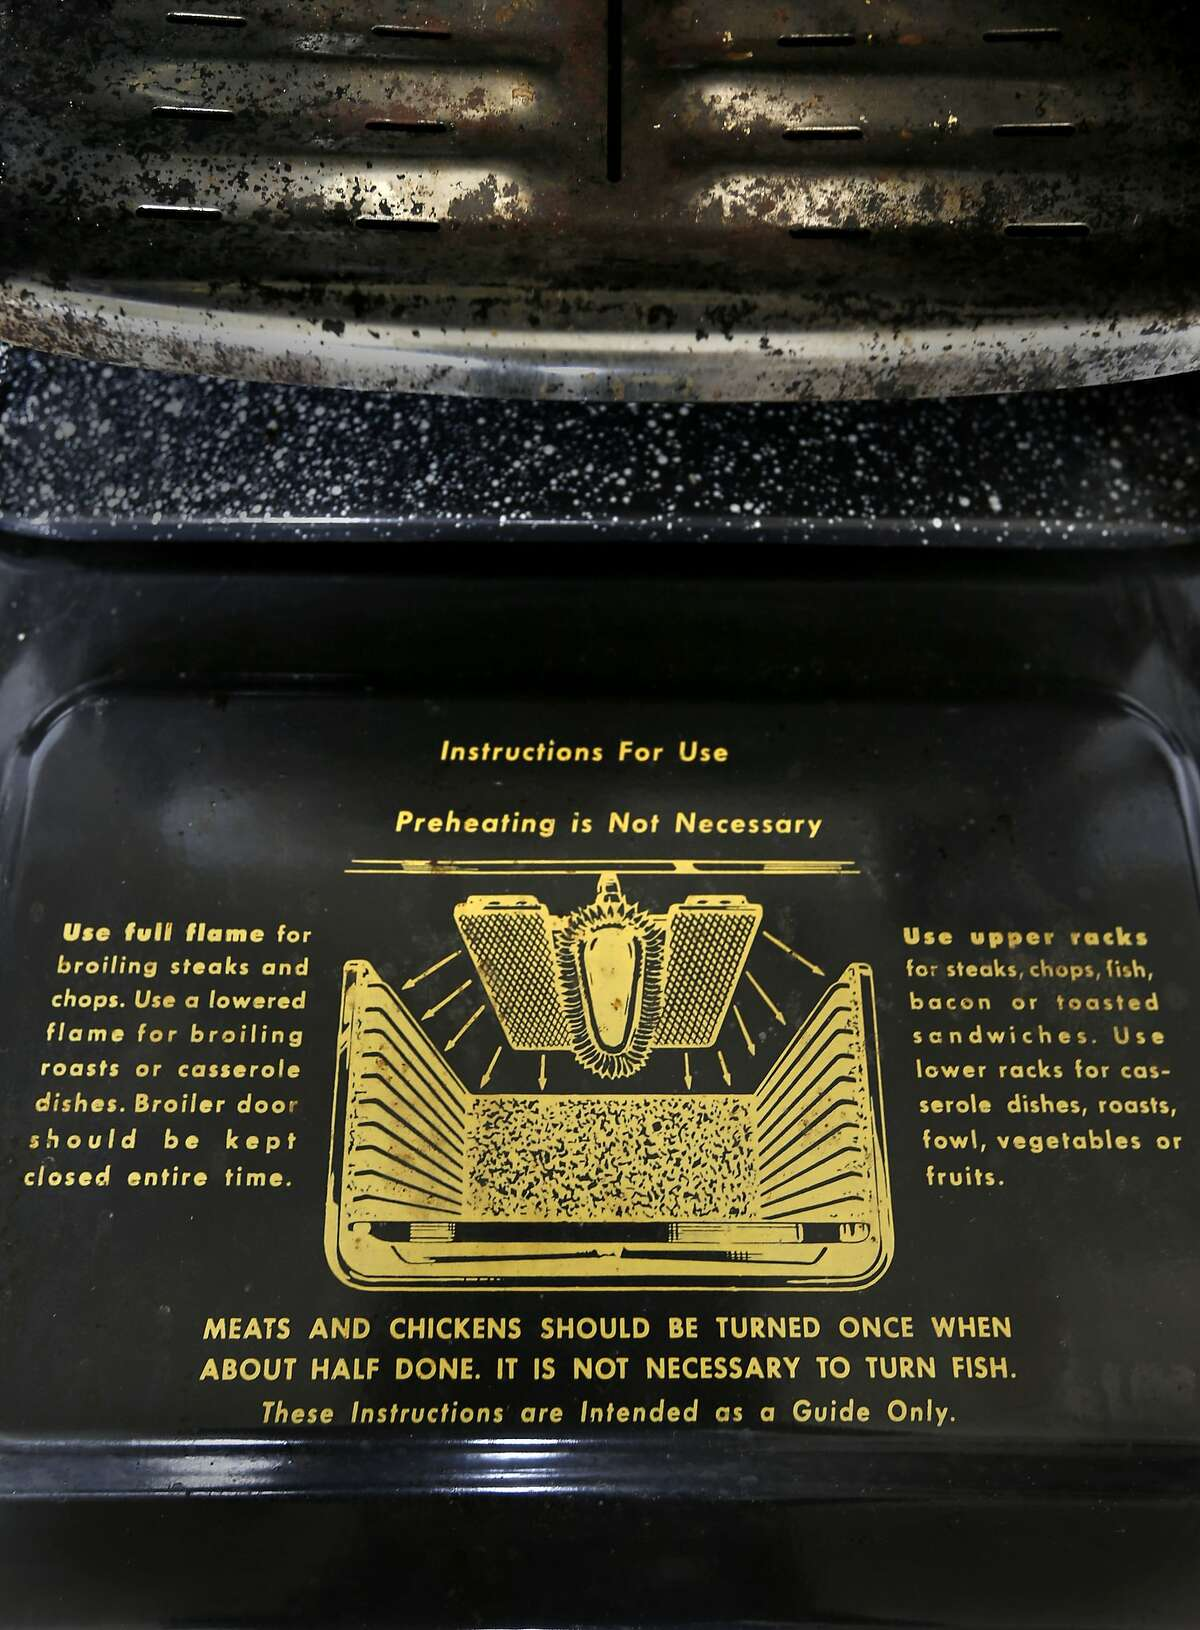 The broiler features spreads to provide high even heat on the vintage Wedgewood stove owned by Don Link as seen in Oakland, Calif., on Tuesday June 10, 2014. Link is a collector of vintage stoves.